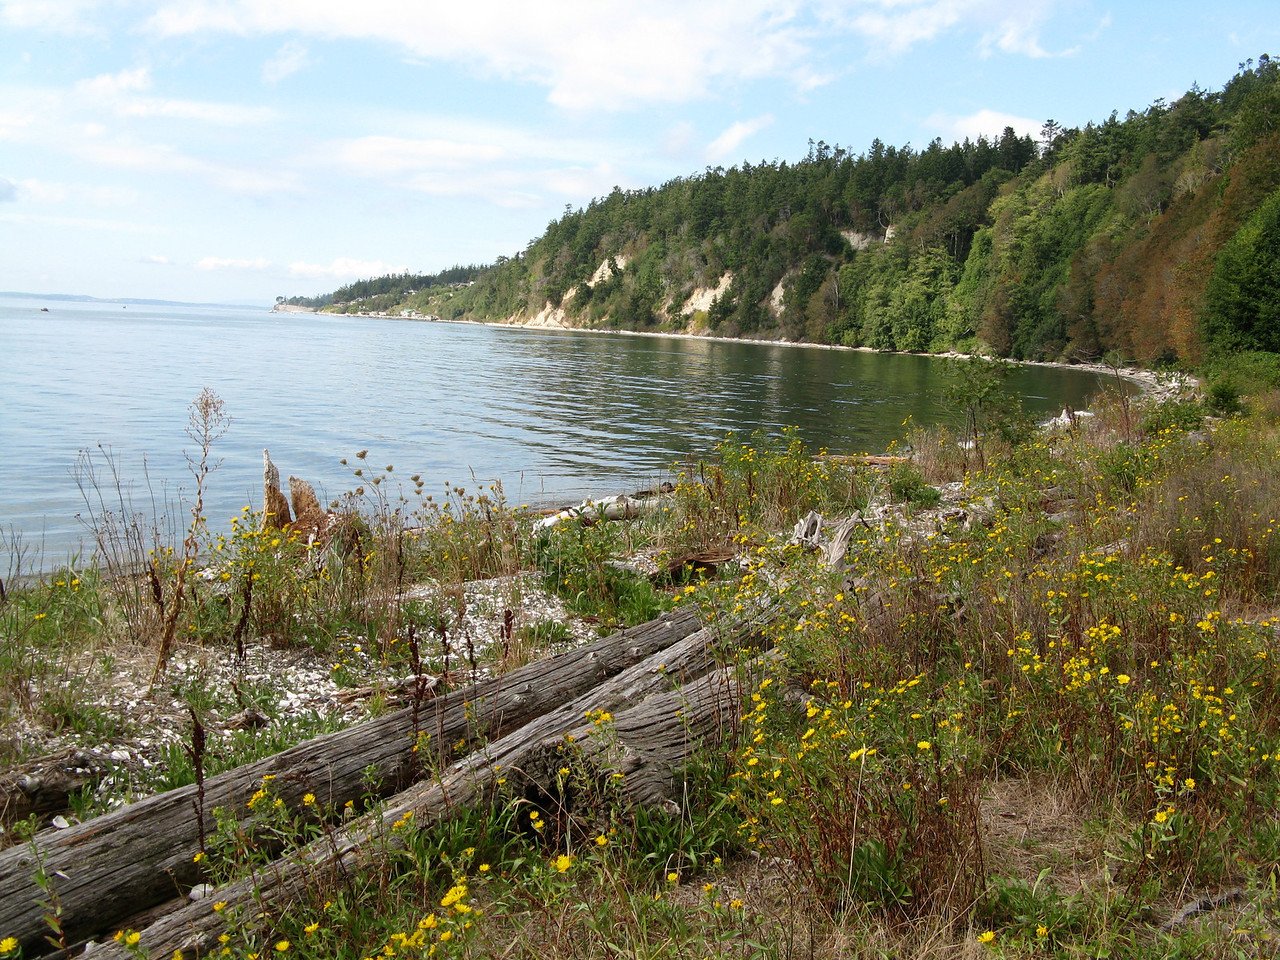 This view is looking north at the west shore of Camano Island.